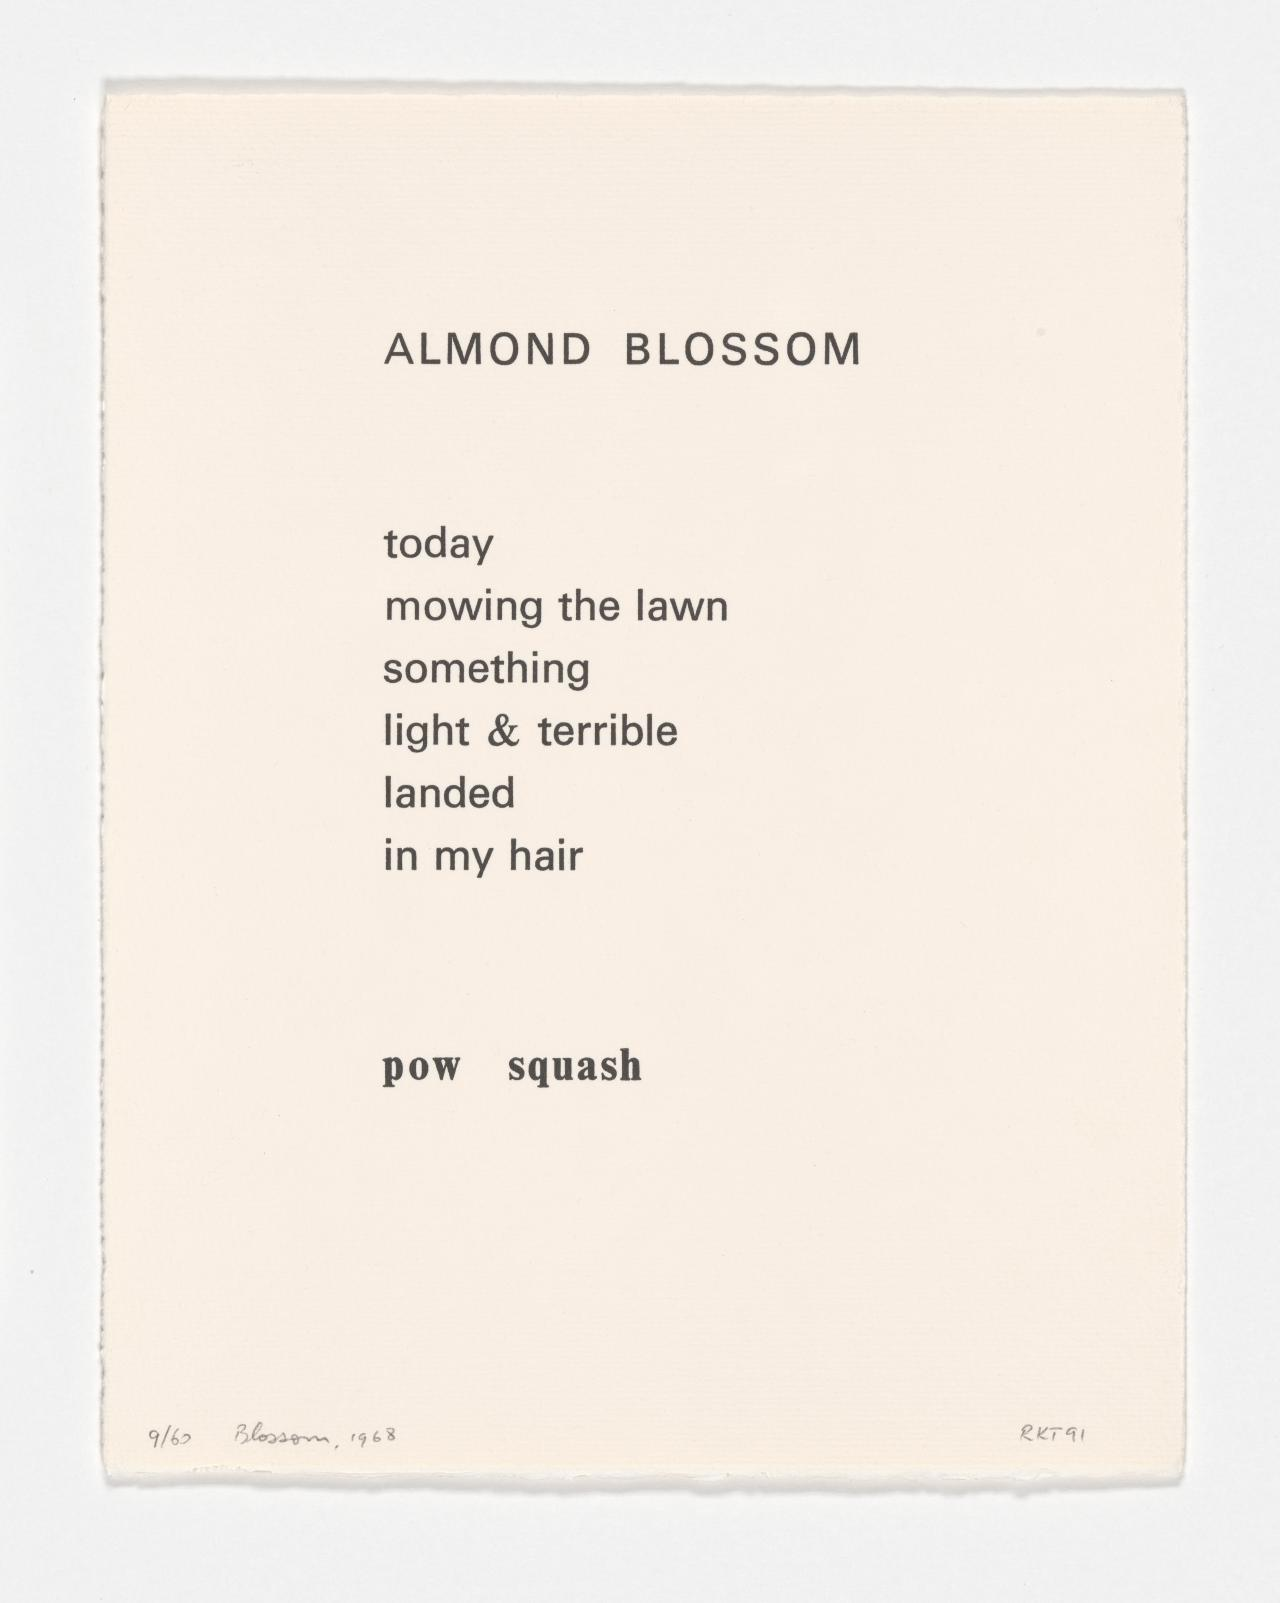 Almond Blossom from